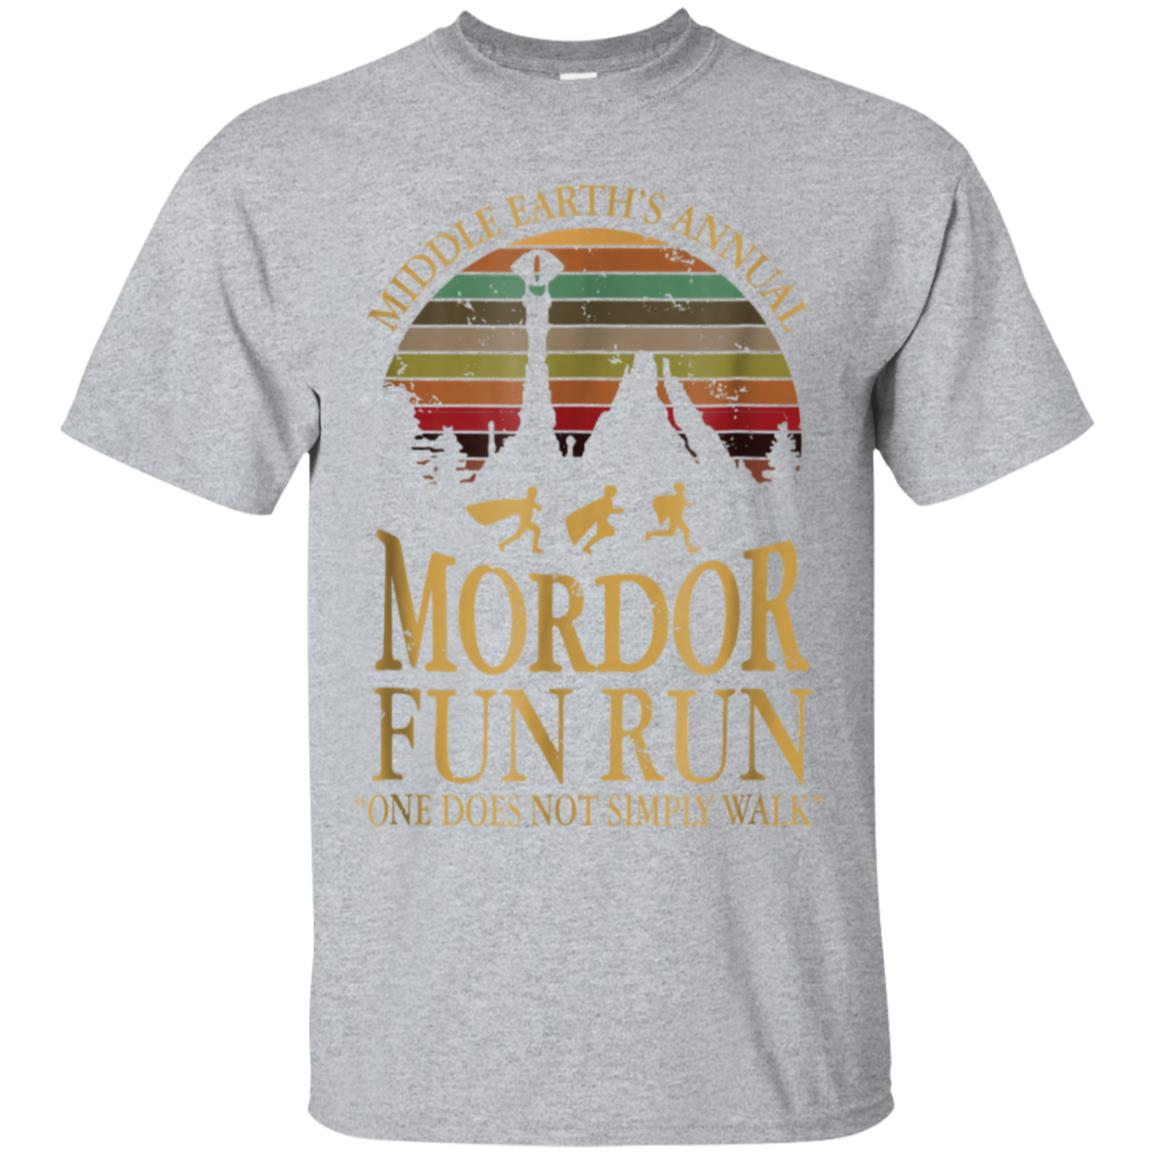 6c4a2254 Awesome vintage retro middle earth's annual mordor fun run t shirt ...